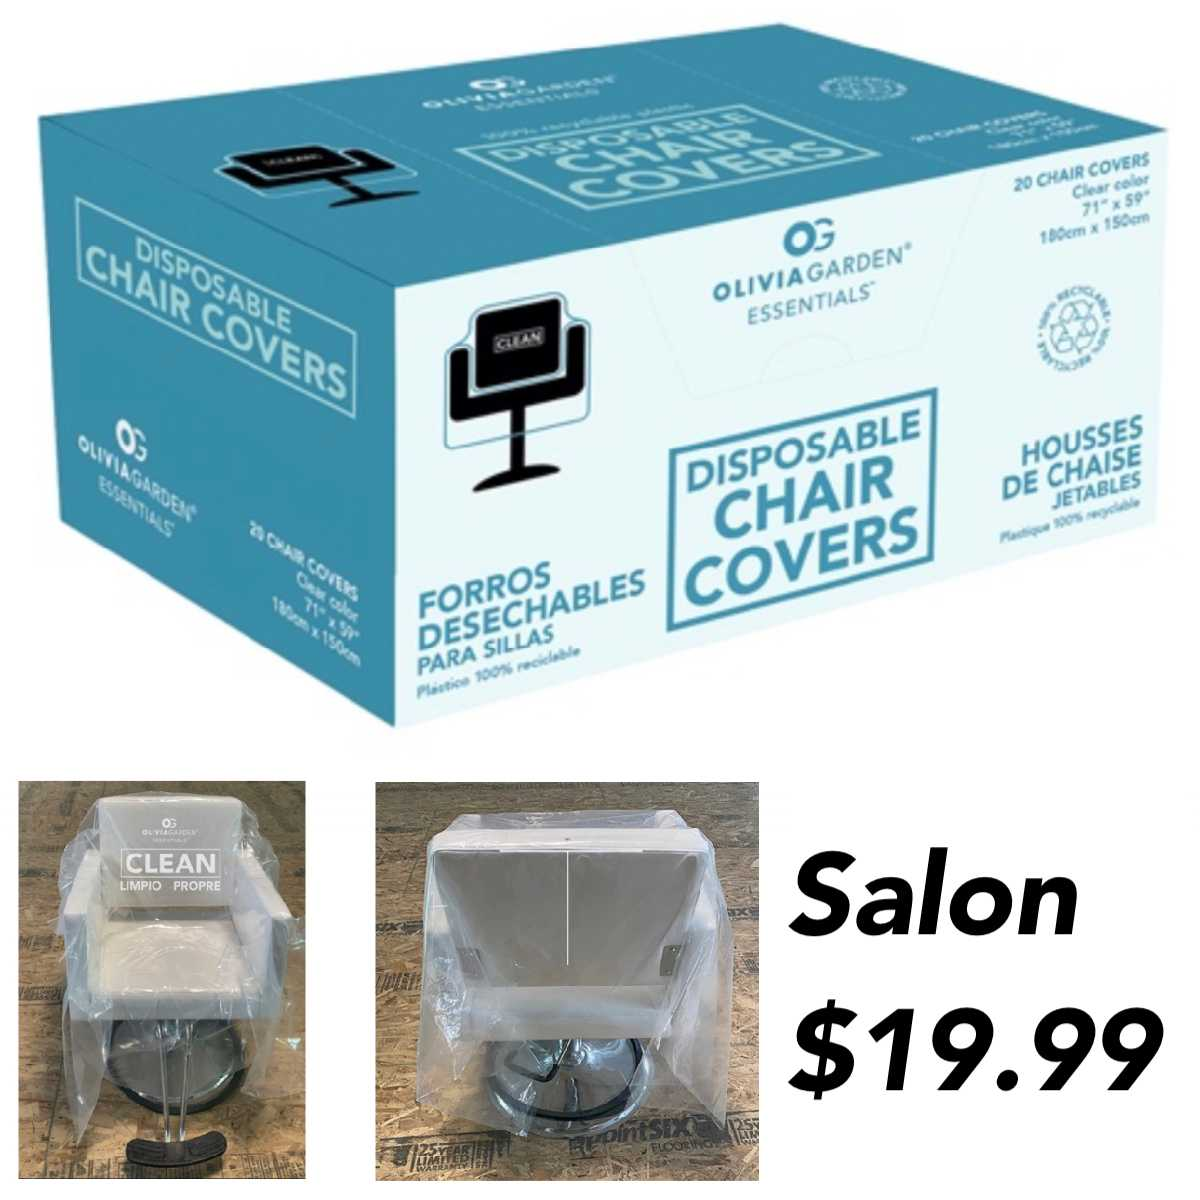 Disposable Chair Covers 25 Pack Preorder Sullivan Beauty